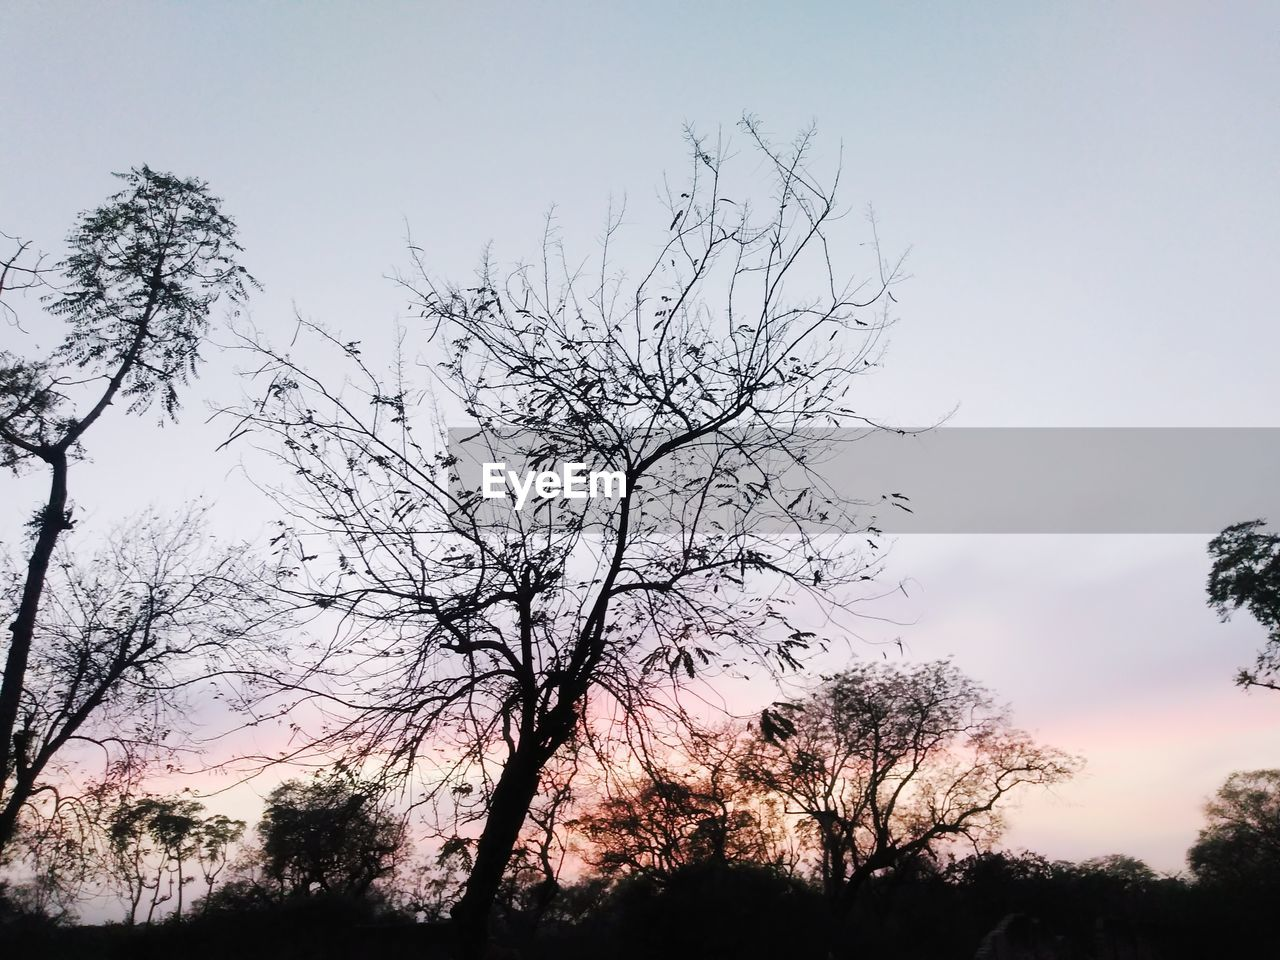 sky, tree, plant, beauty in nature, tranquility, silhouette, branch, sunset, bare tree, nature, no people, tranquil scene, scenics - nature, low angle view, growth, outdoors, cloud - sky, non-urban scene, land, environment